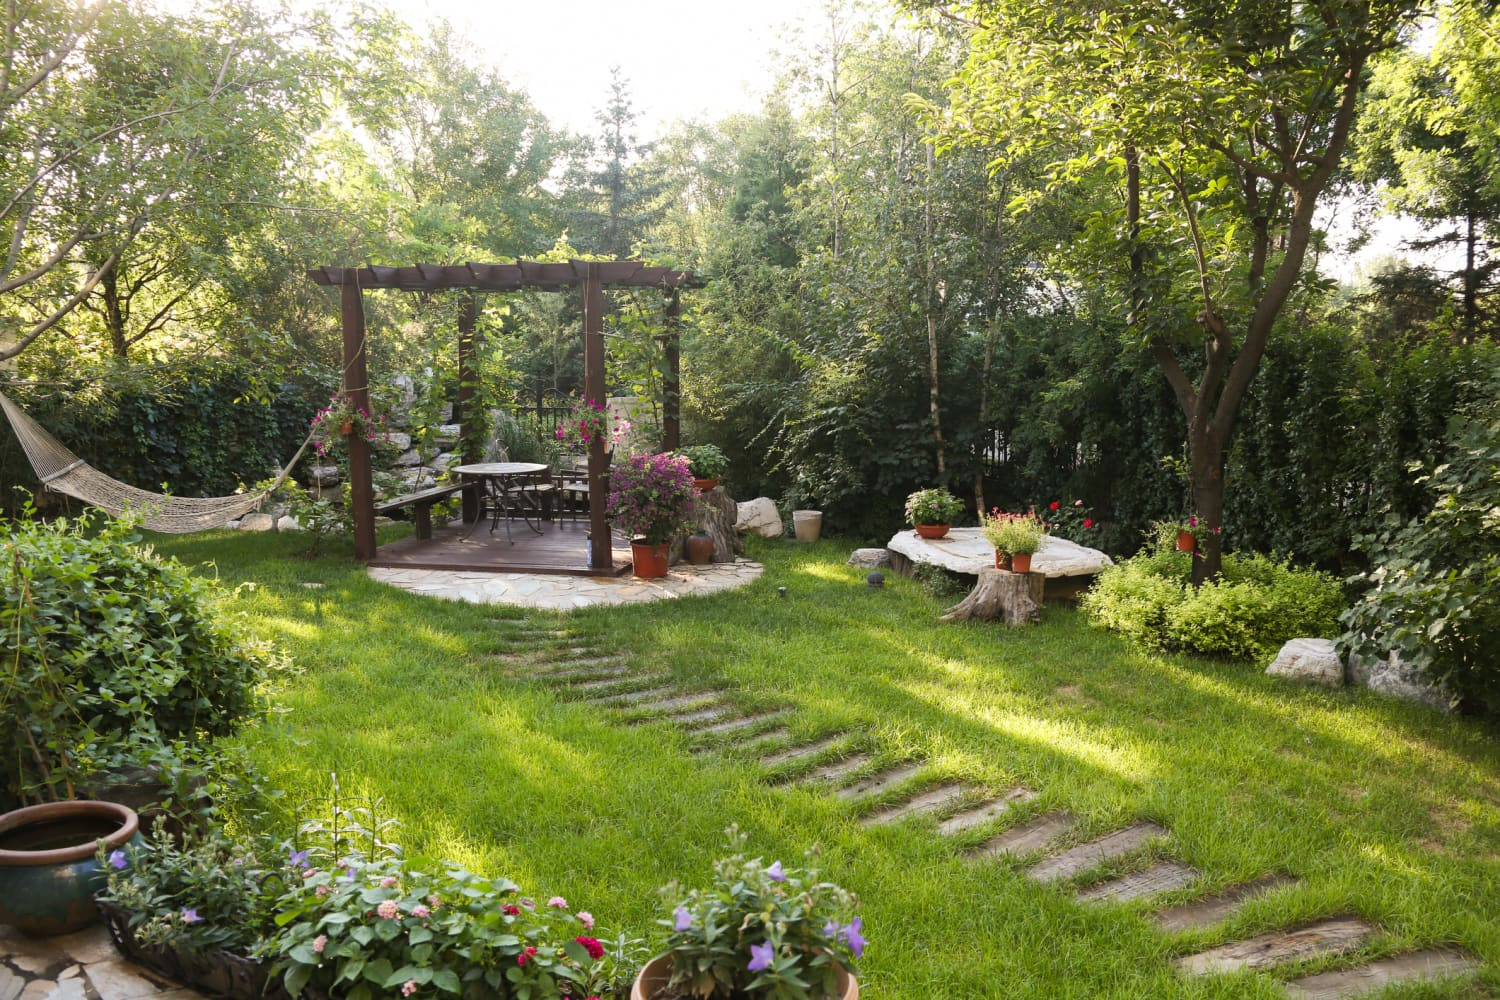 8 Things That Are Always Worth the Extra Money for Your Backyard, According to Home Experts